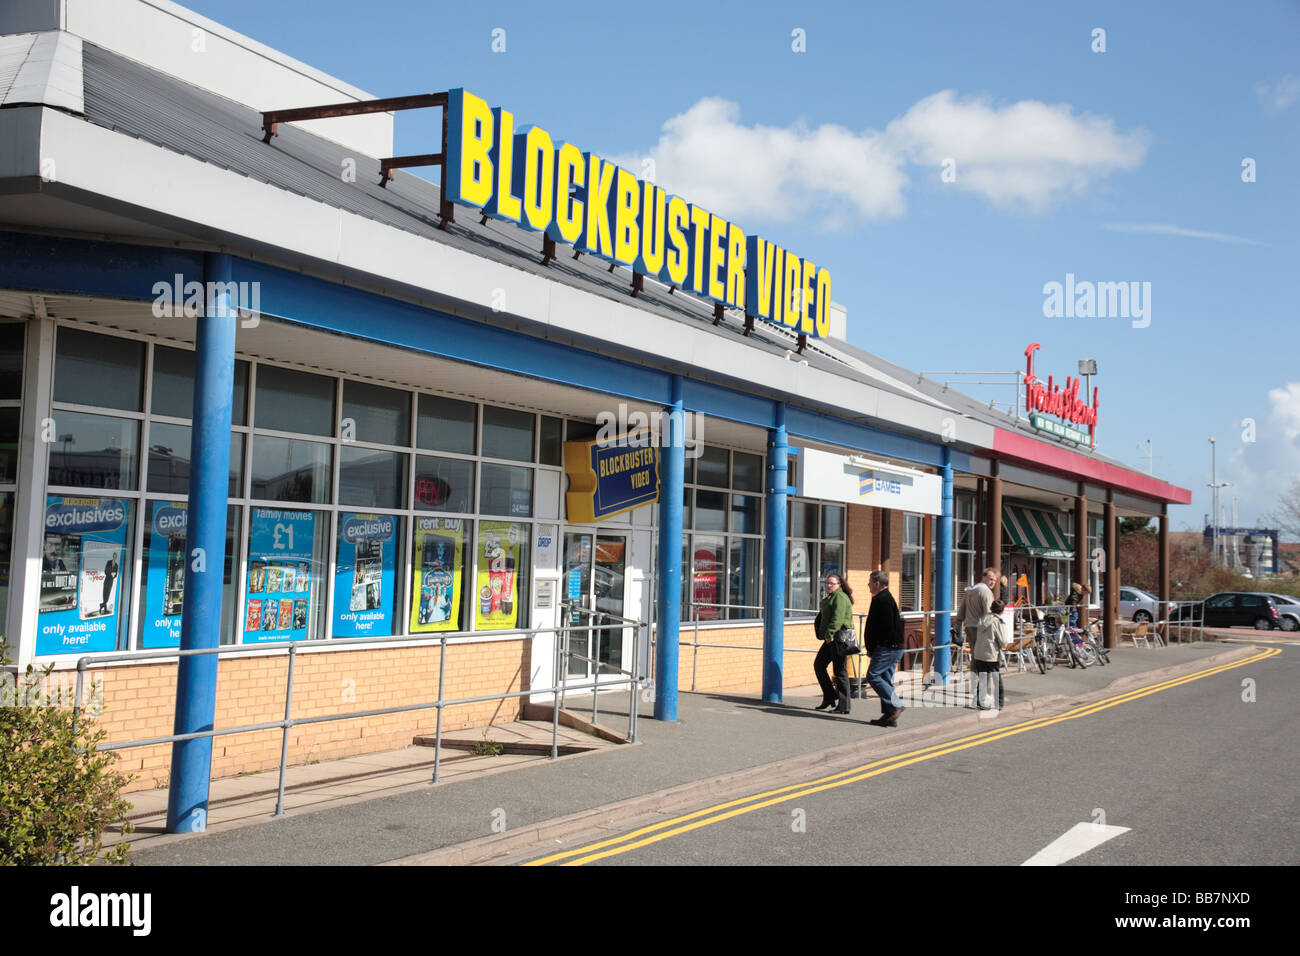 blockbuster video store stock photos blockbuster video store stock images alamy. Black Bedroom Furniture Sets. Home Design Ideas